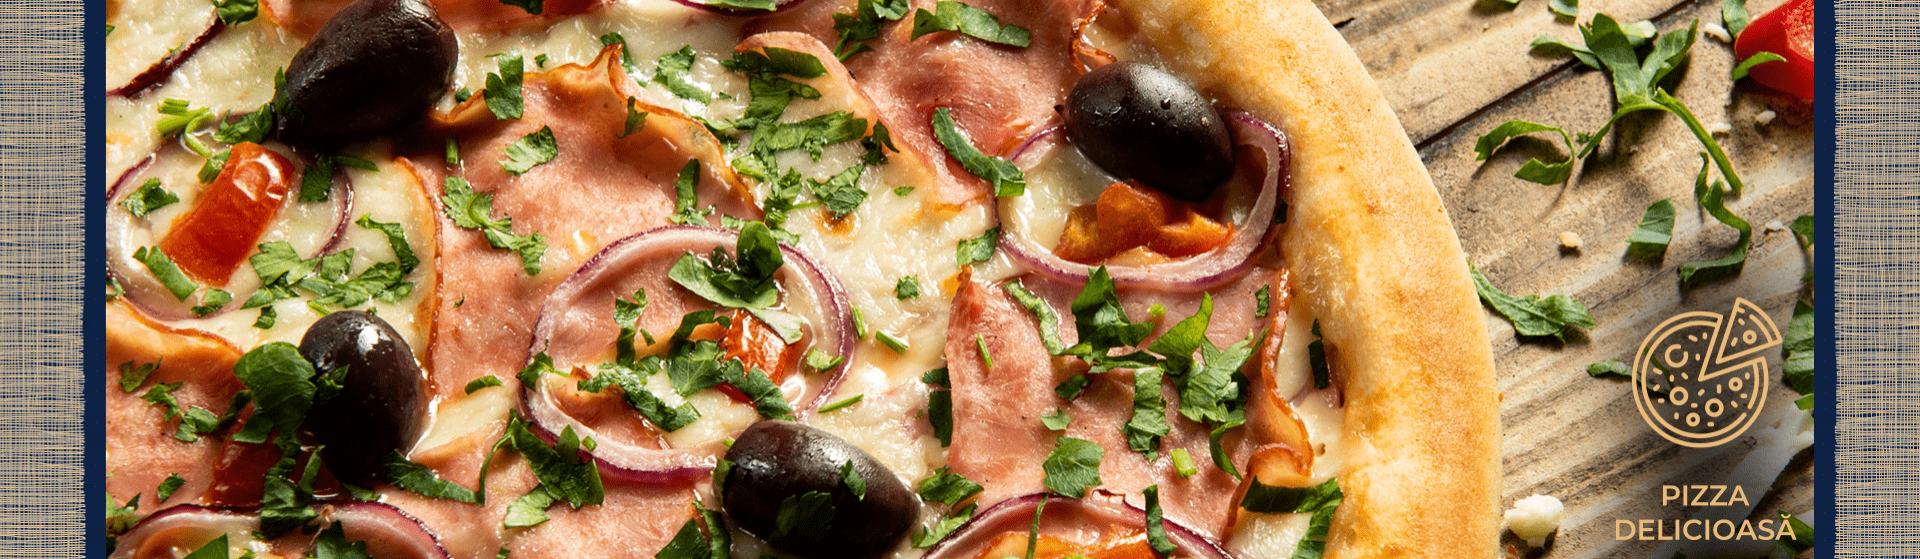 Banner-homepage-pizza